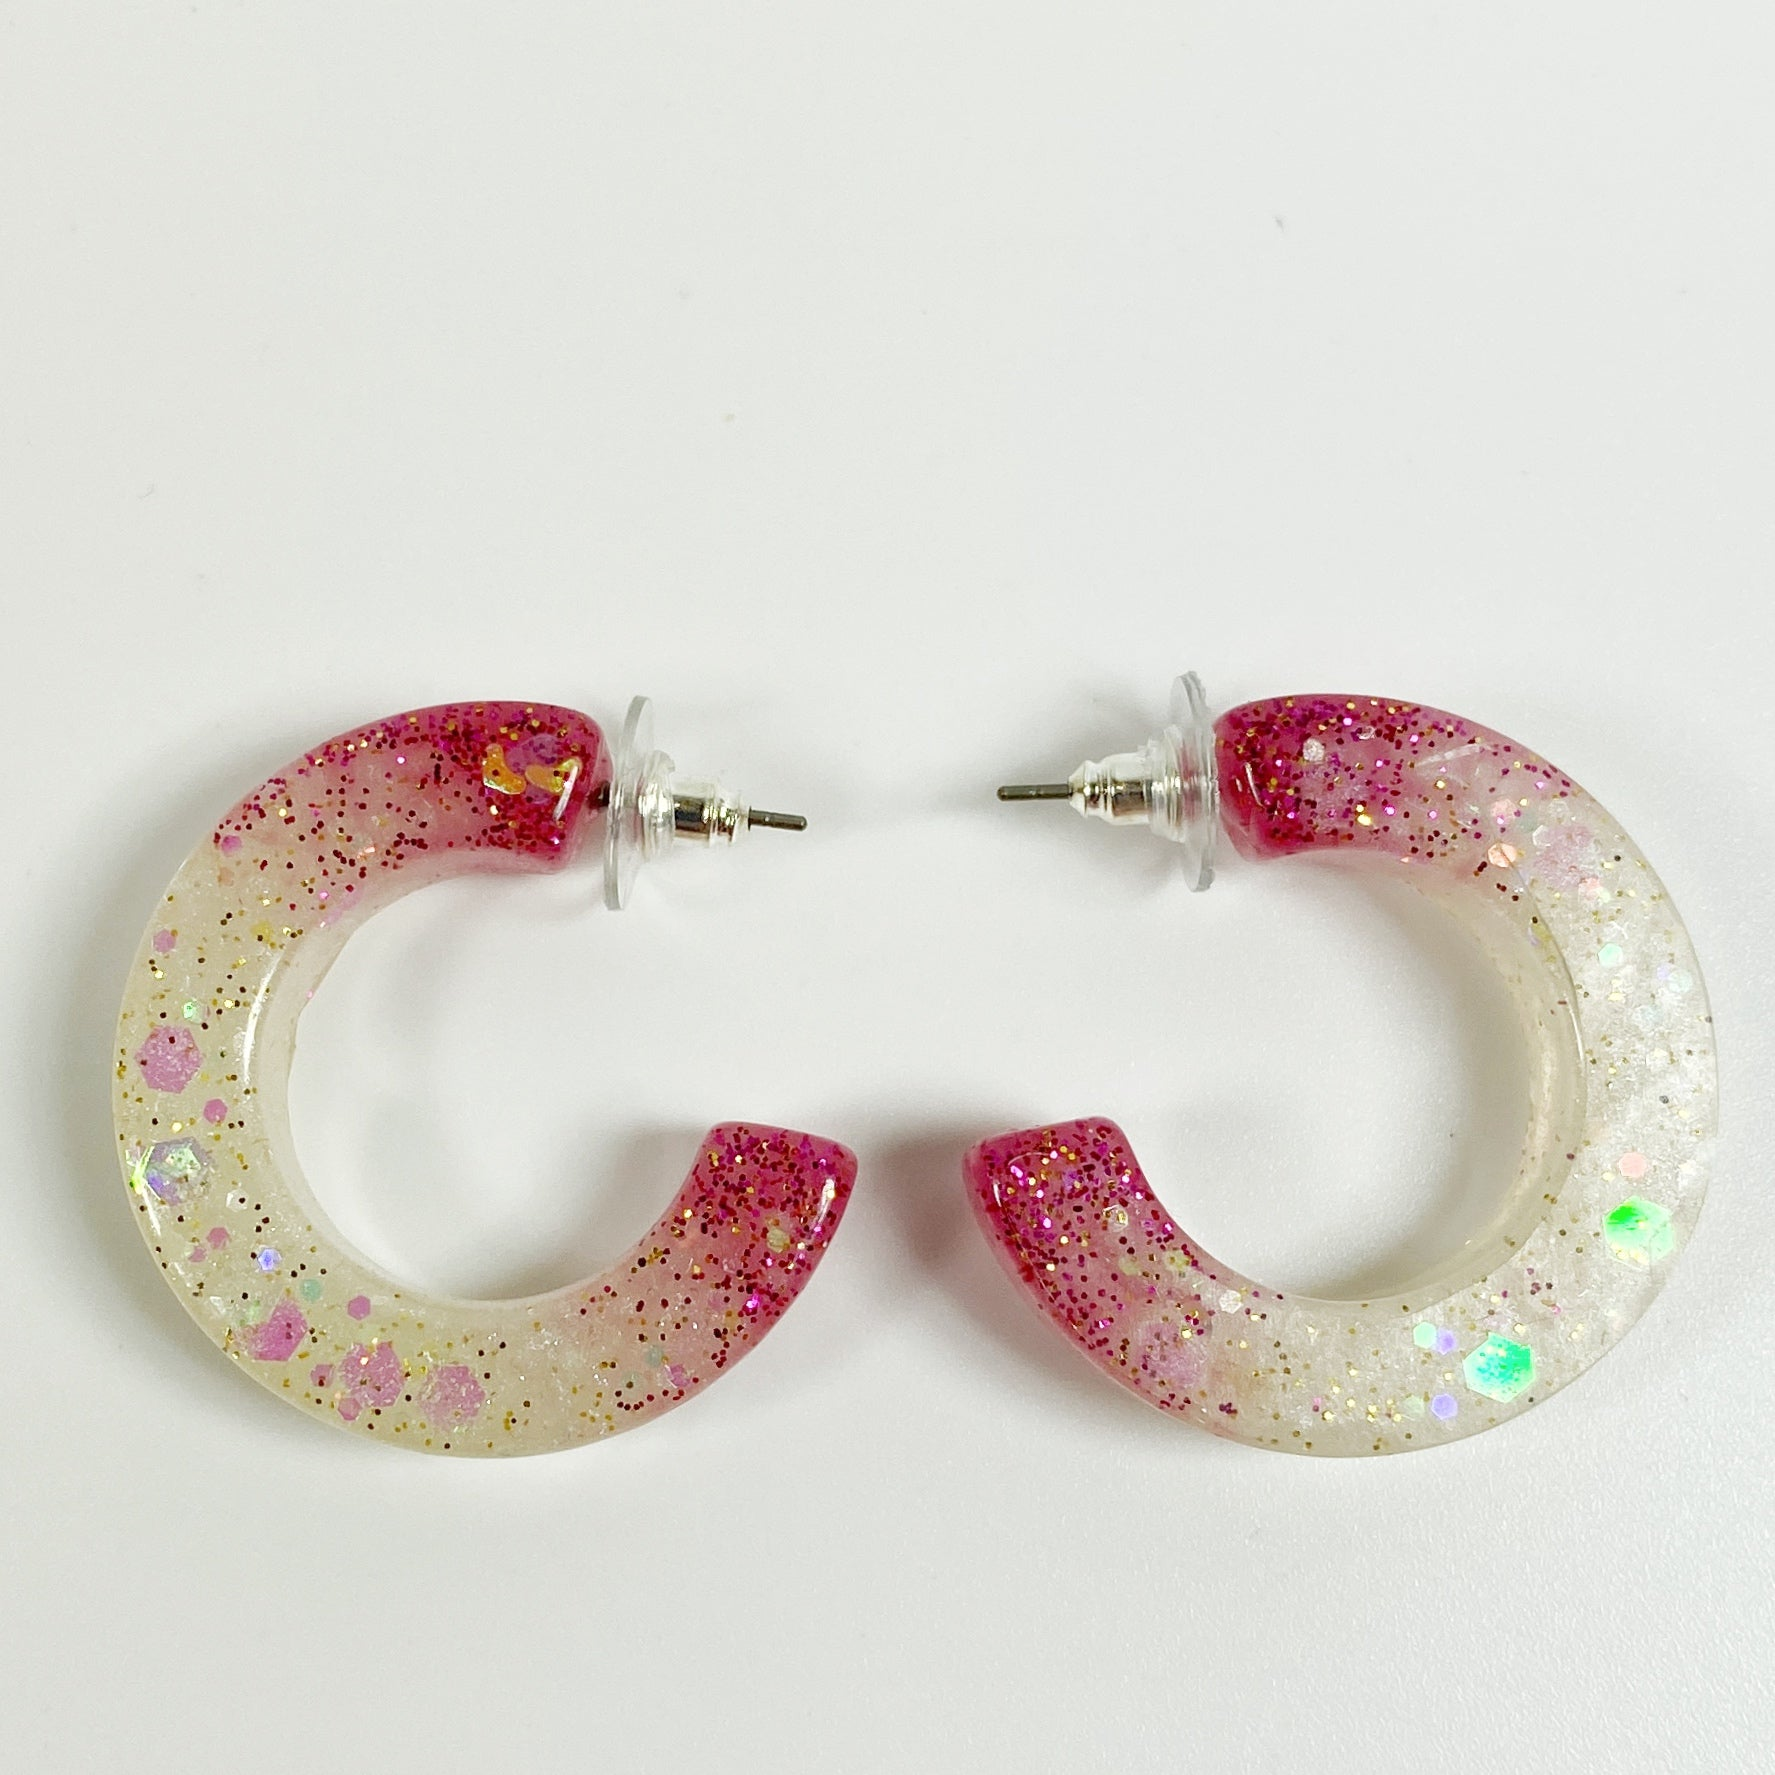 Scarlet and Grey C Hoop Handmade Resin Earrings front view